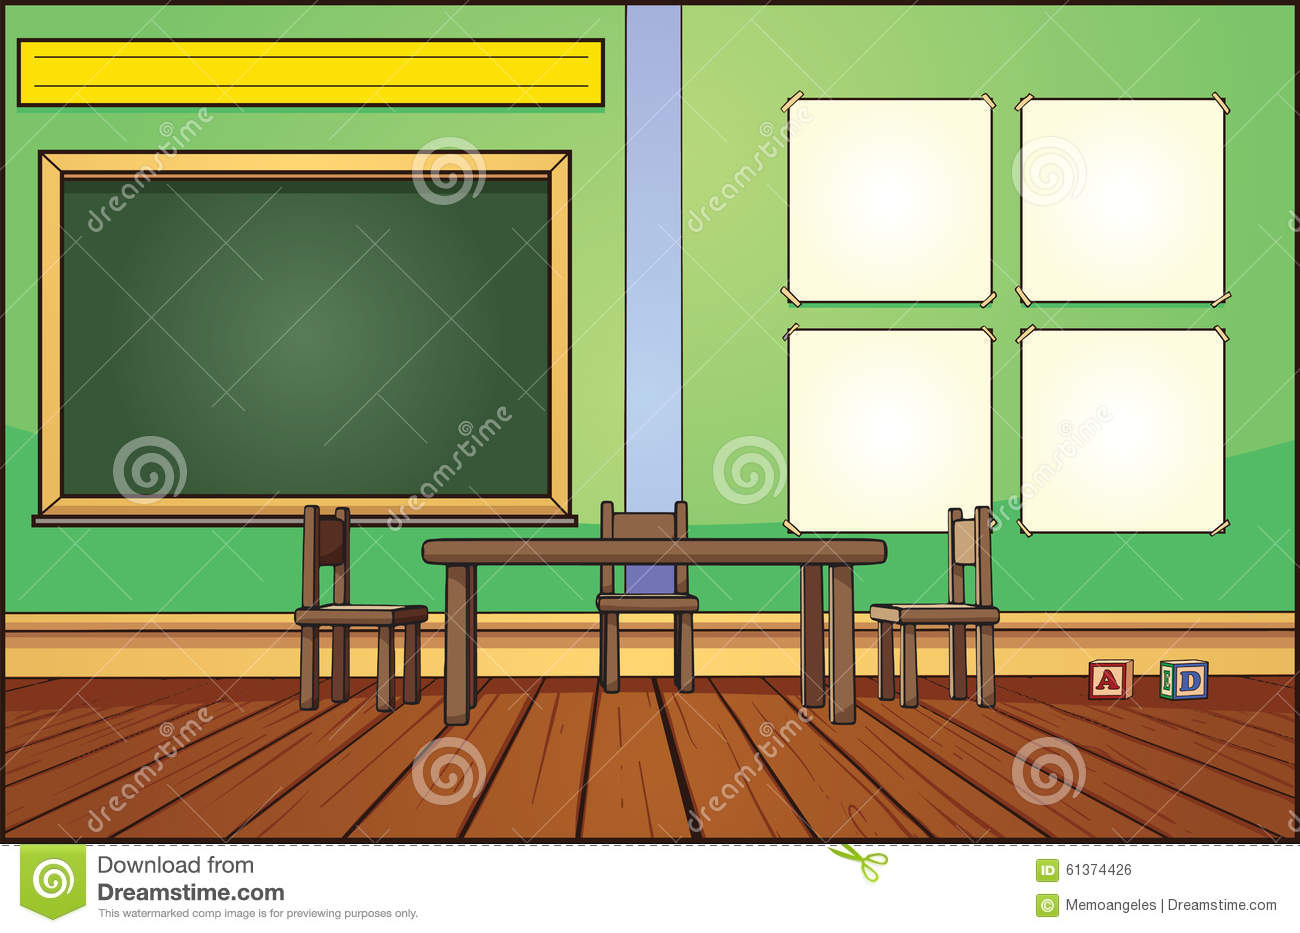 Classroom background clipart 1 » Clipart Station.